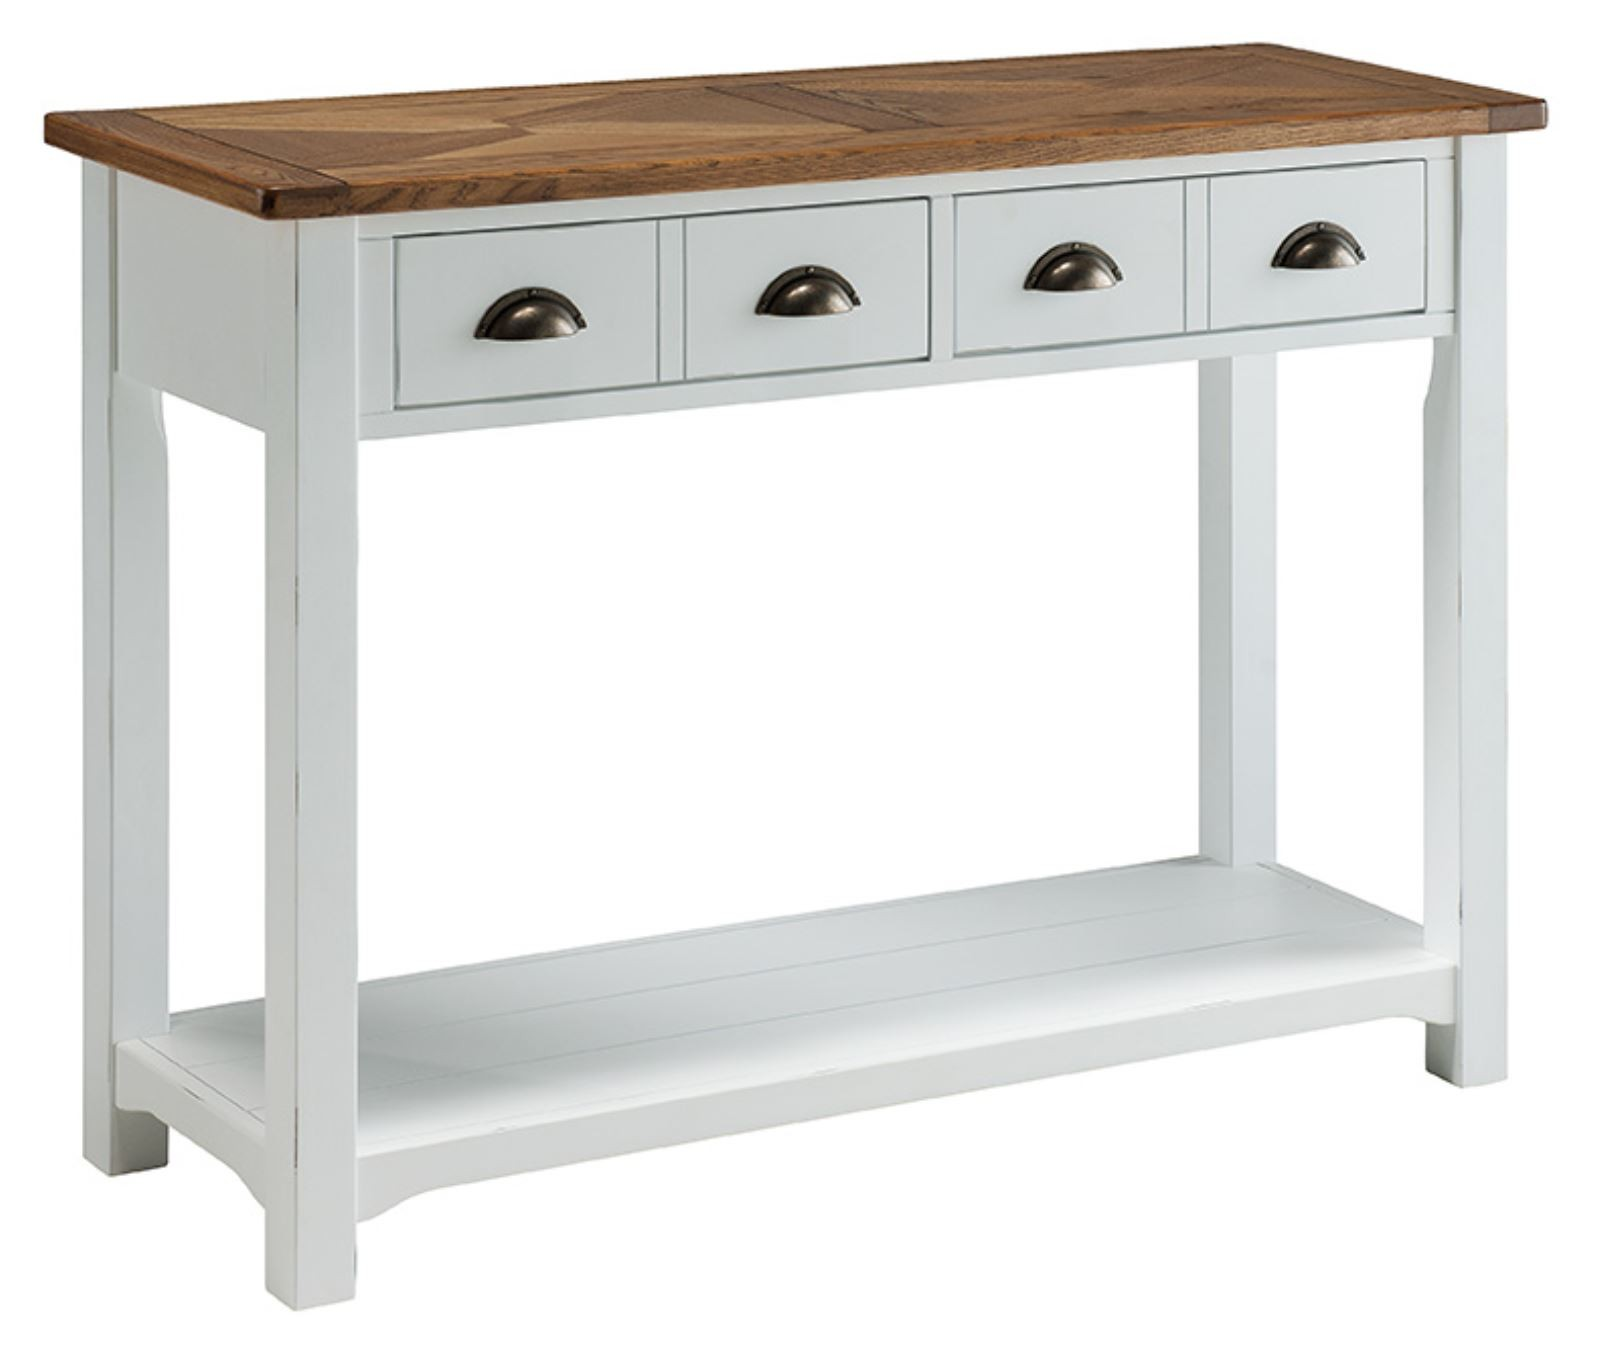 Porto Painted White Reclaimed Pine Chunky Style Console Table : porto painted white reclaimed pine chunky style console table 38395 p from www.uniquechicfurniture.co.uk size 1600 x 1354 jpeg 118kB